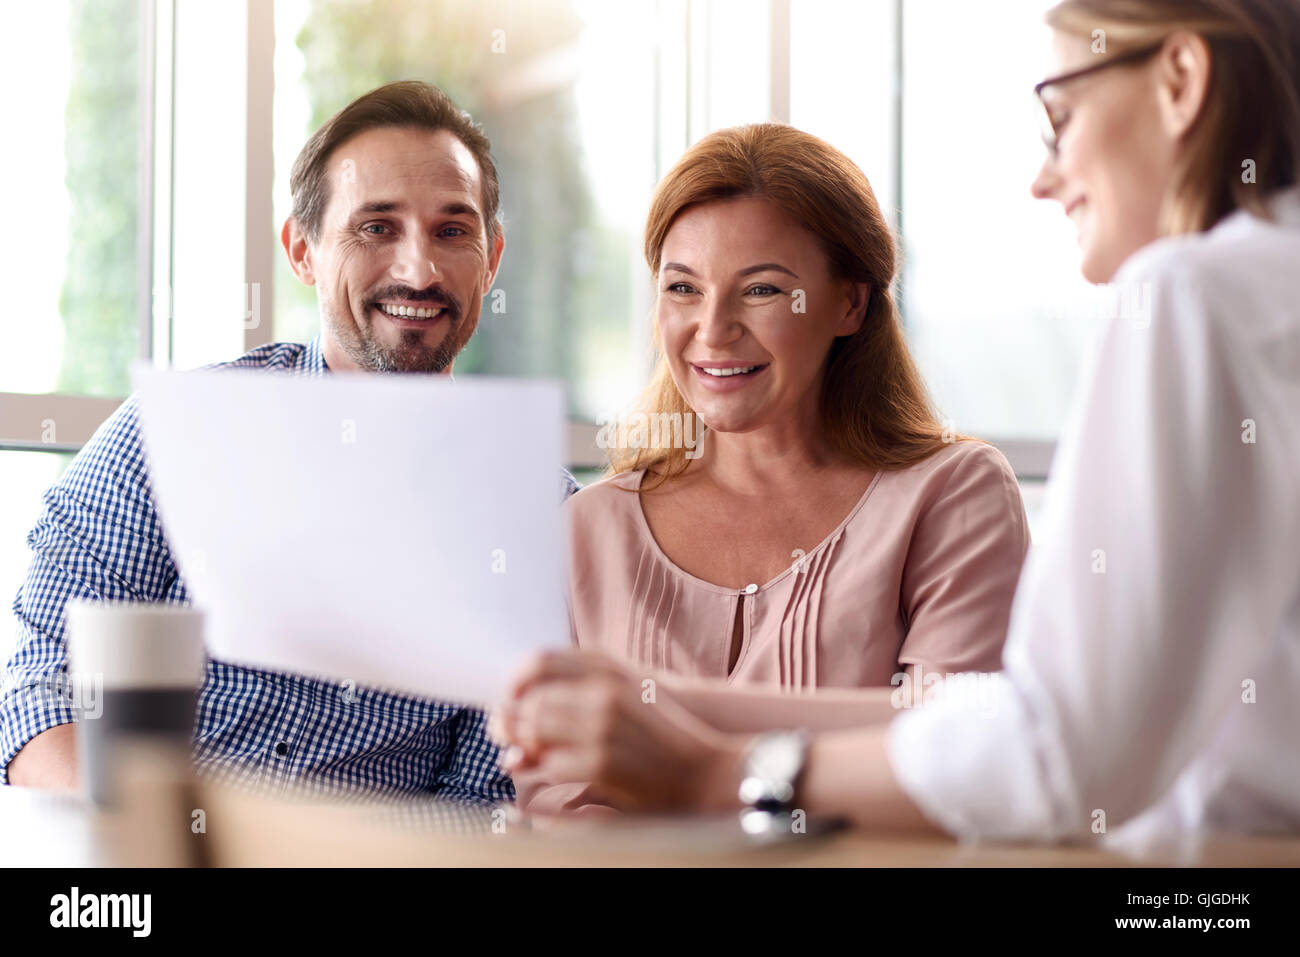 Cheerful colleagues sharing ideas. - Stock Image